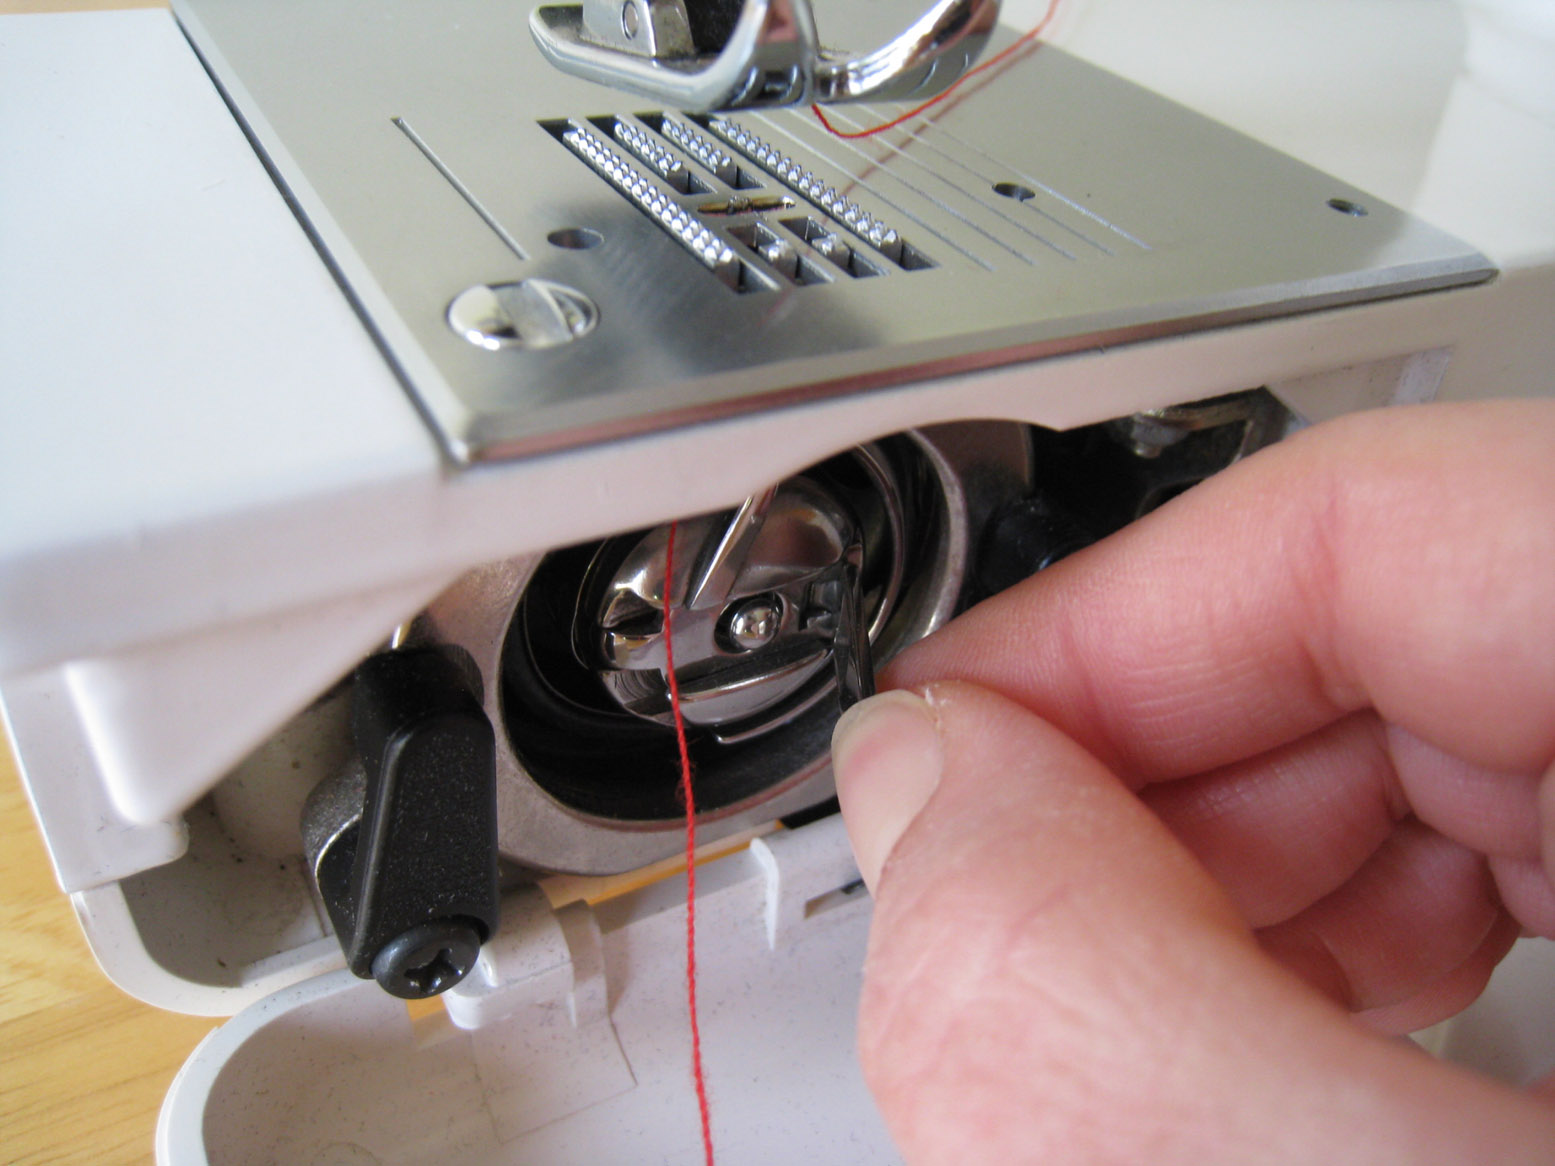 bobbin for sewing machine